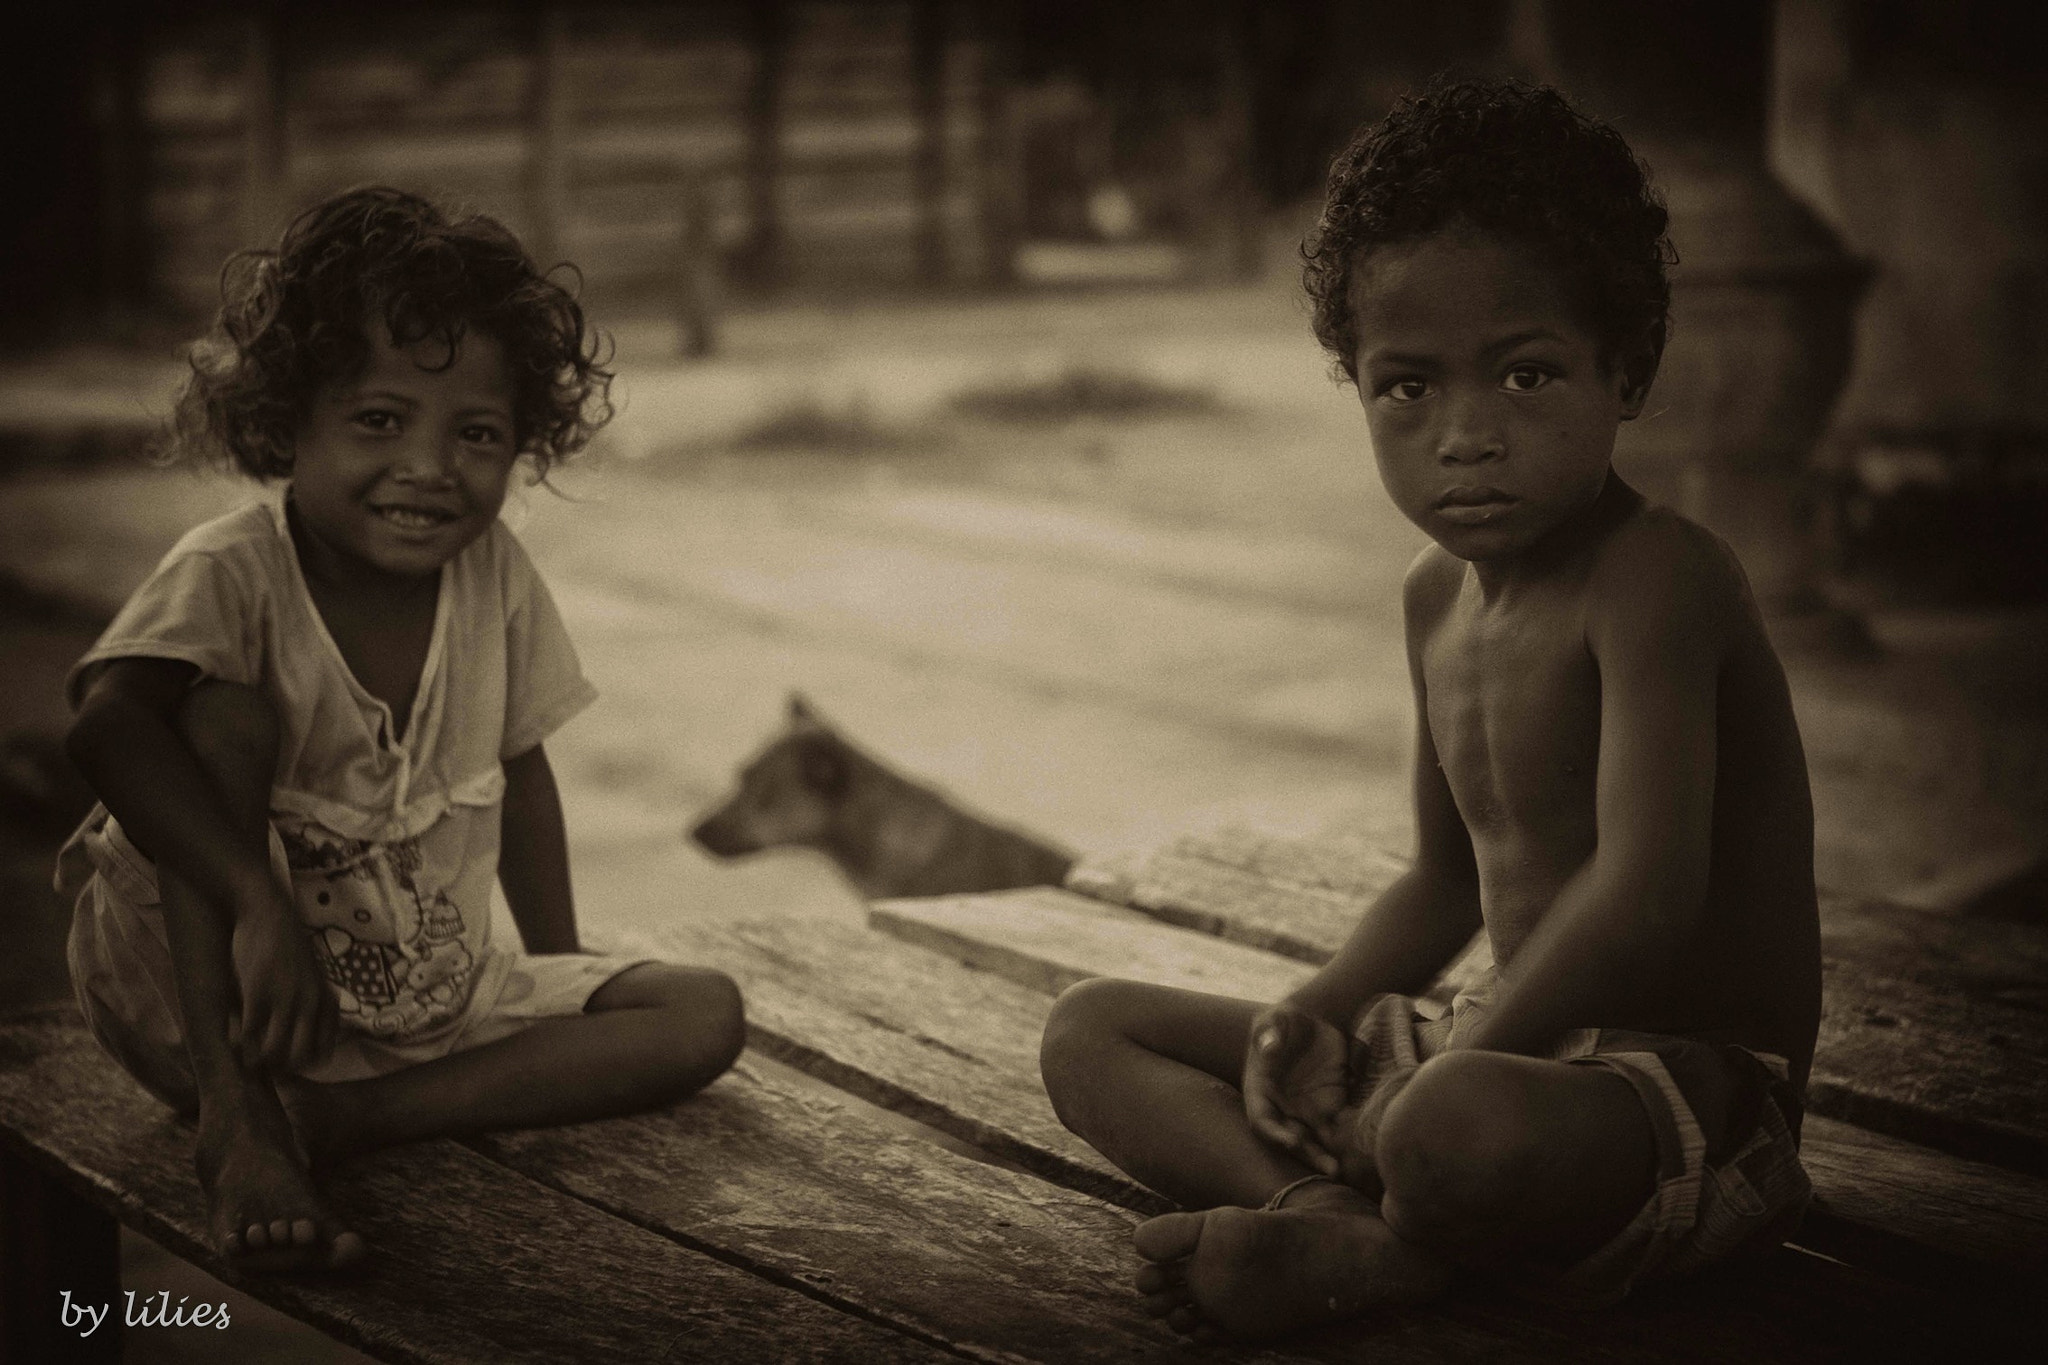 Photograph Children of Pam, Raja Ampat Papua, Indonesia by Lilies Santoso on 500px